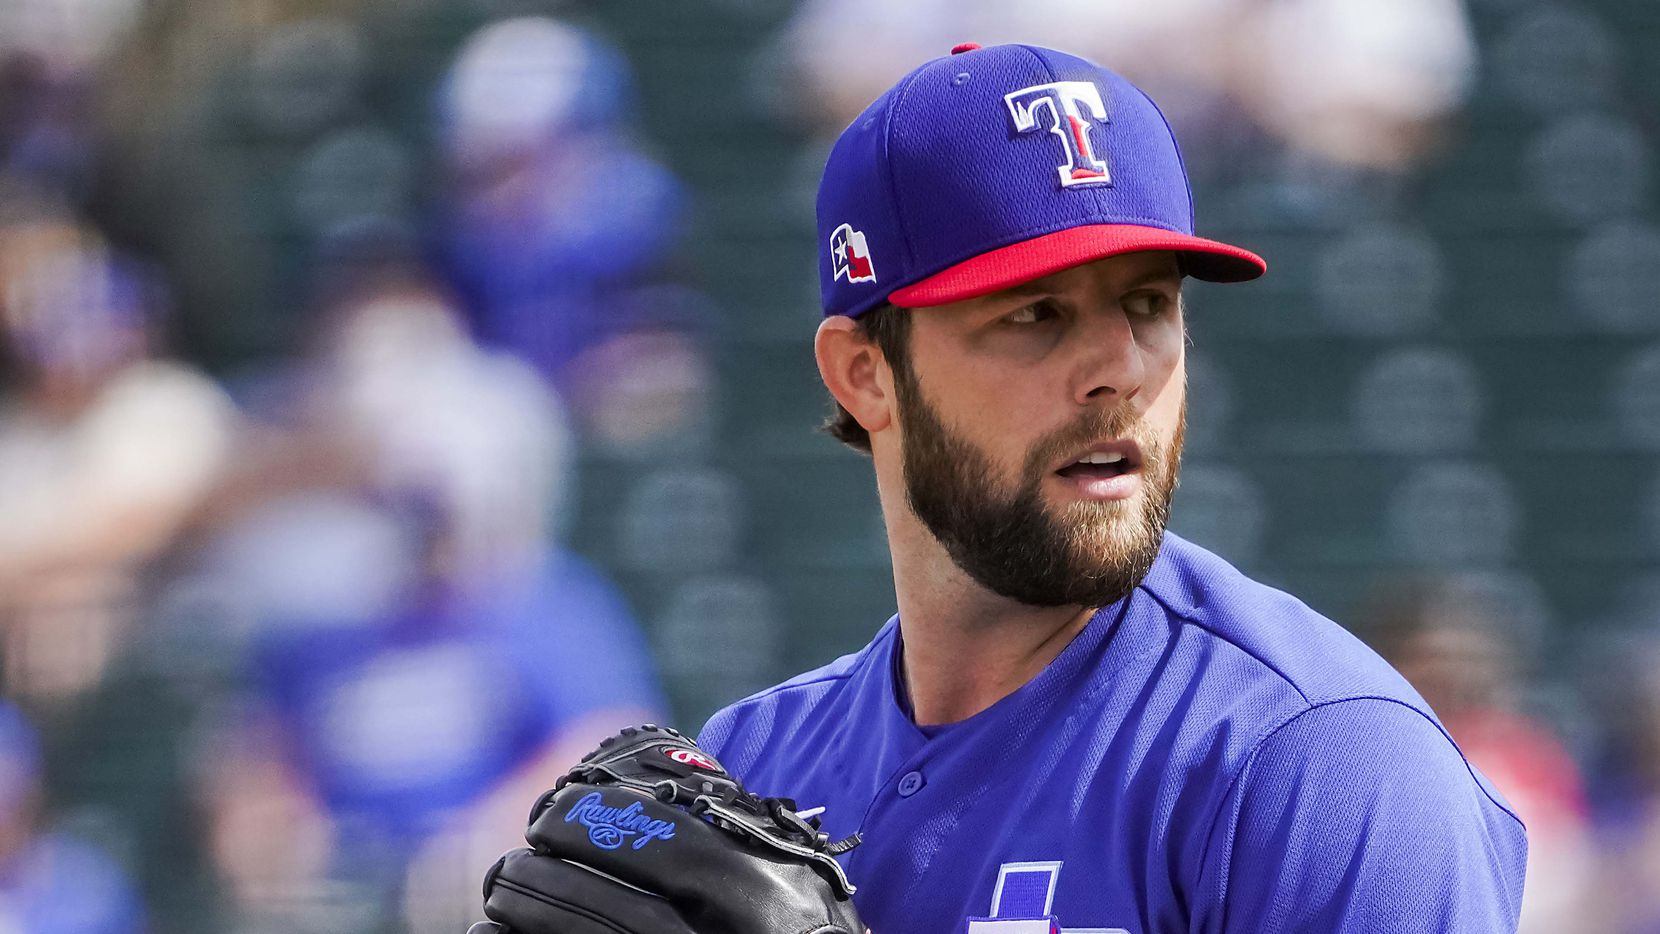 Texas Rangers pitcher Jordan Lyles delivers during the third inning of a spring training game against the Los Angeles Dodgers at Surprise Stadium on Sunday, March 7, 2021, in Surprise, Ariz. (Smiley N. Pool/The Dallas Morning News)